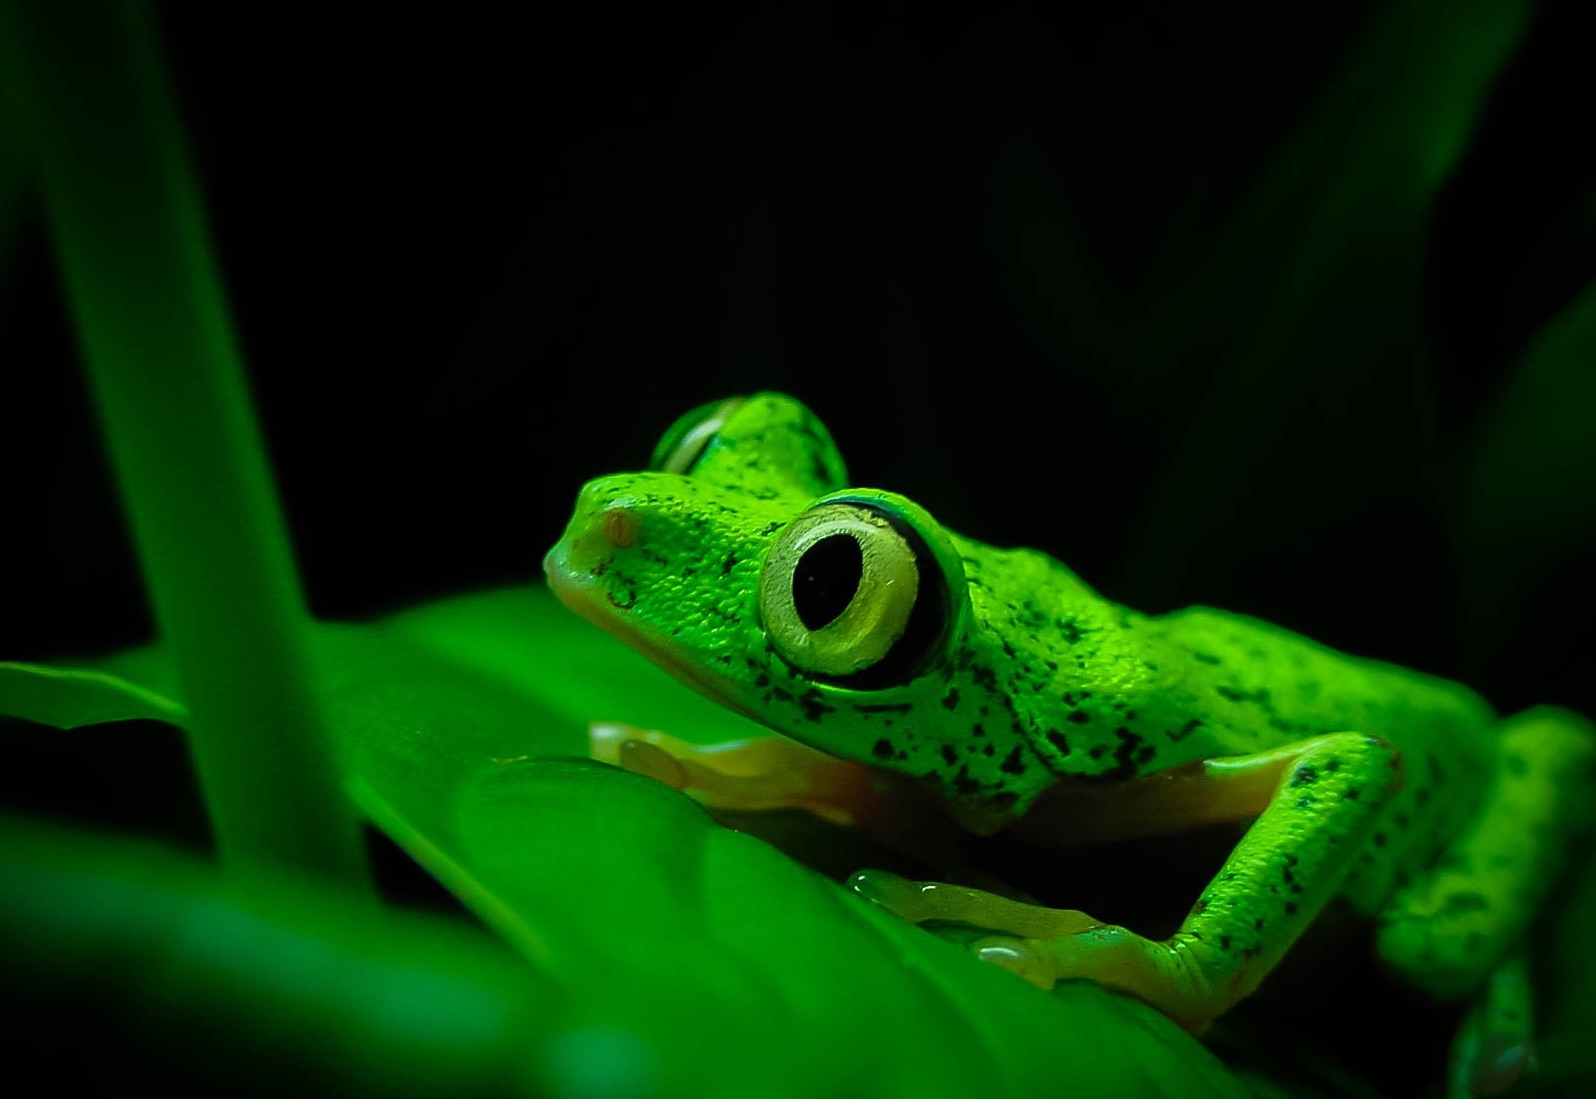 We need your help to save amphibians!